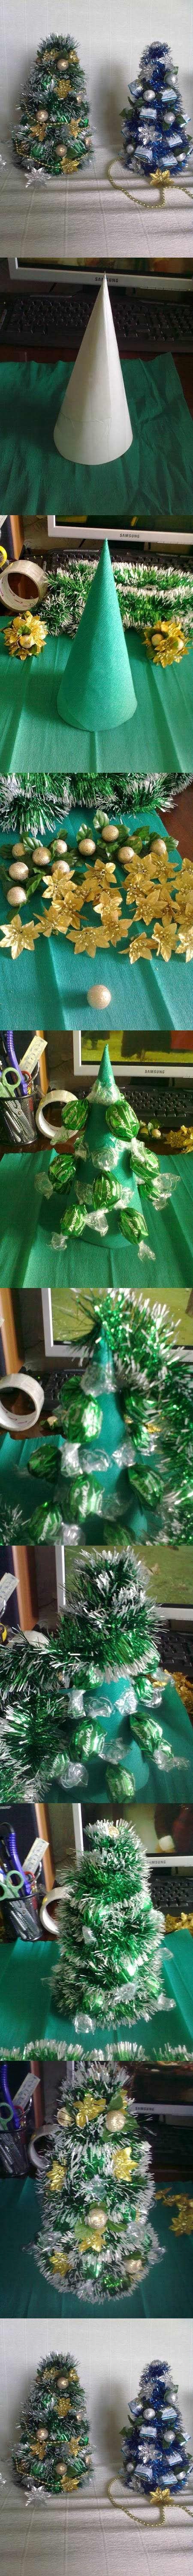 How to make Candy Christmas Trees step by step DIY tutorial instructions